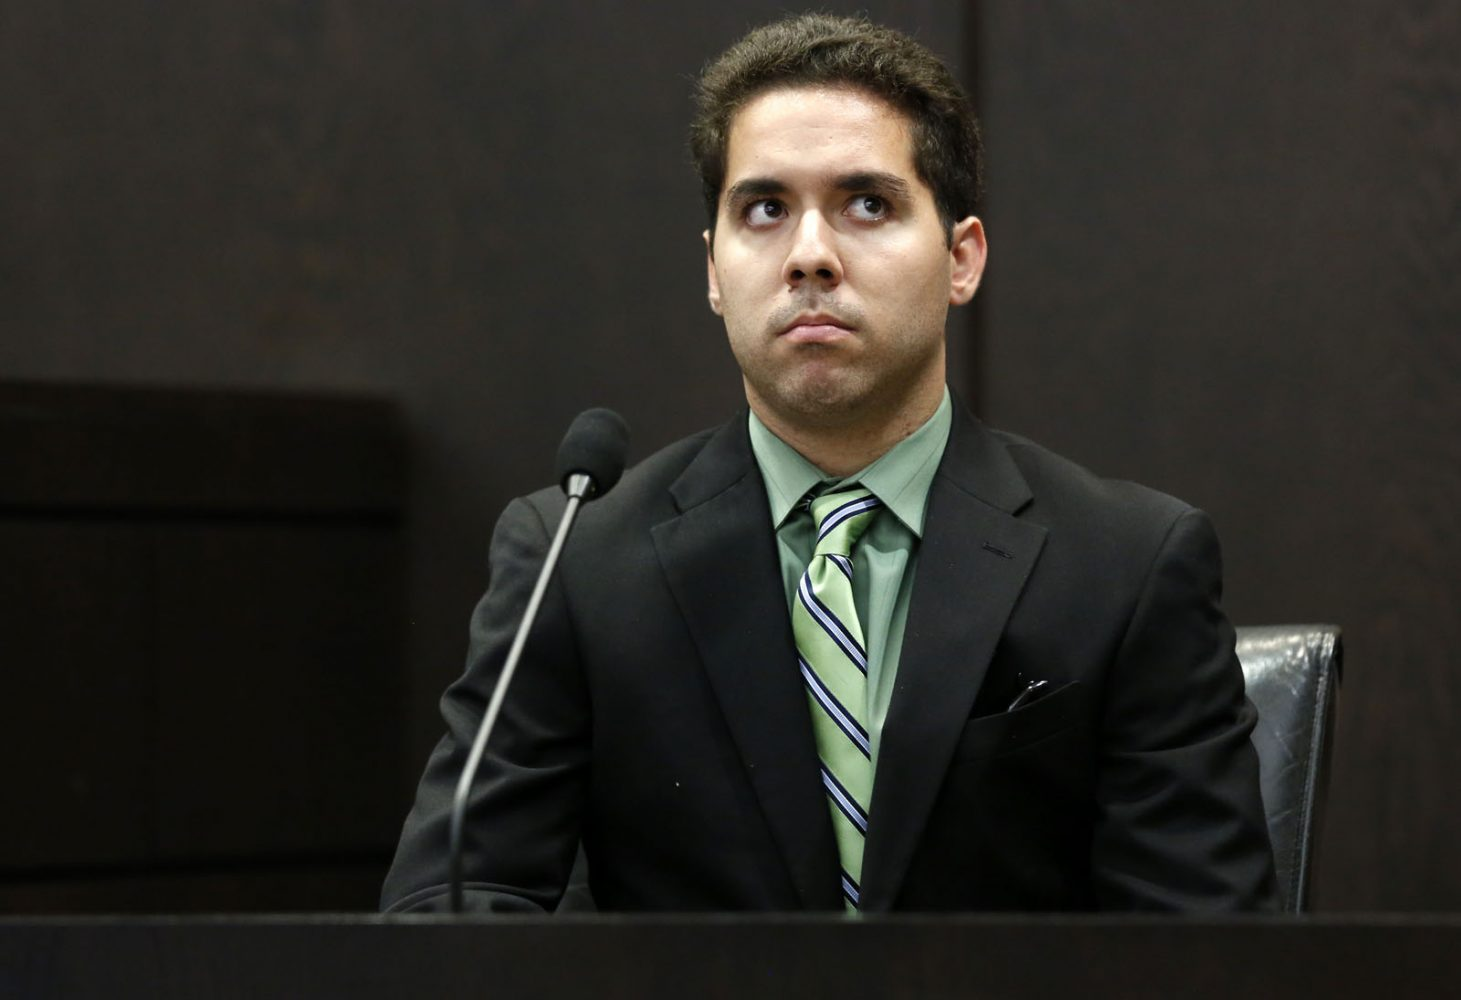 Roberto Finale, one of Pedro Bravo's two roommates, testifies during Bravo's murder trial in courtroom 1B of the Alachua County Criminal Justice Center Friday, August 8, 2014.  Bravo is accused of killing University of Florida student Christian Aguilar.  (Doug Finger/The Gainesville Sun/Pool)